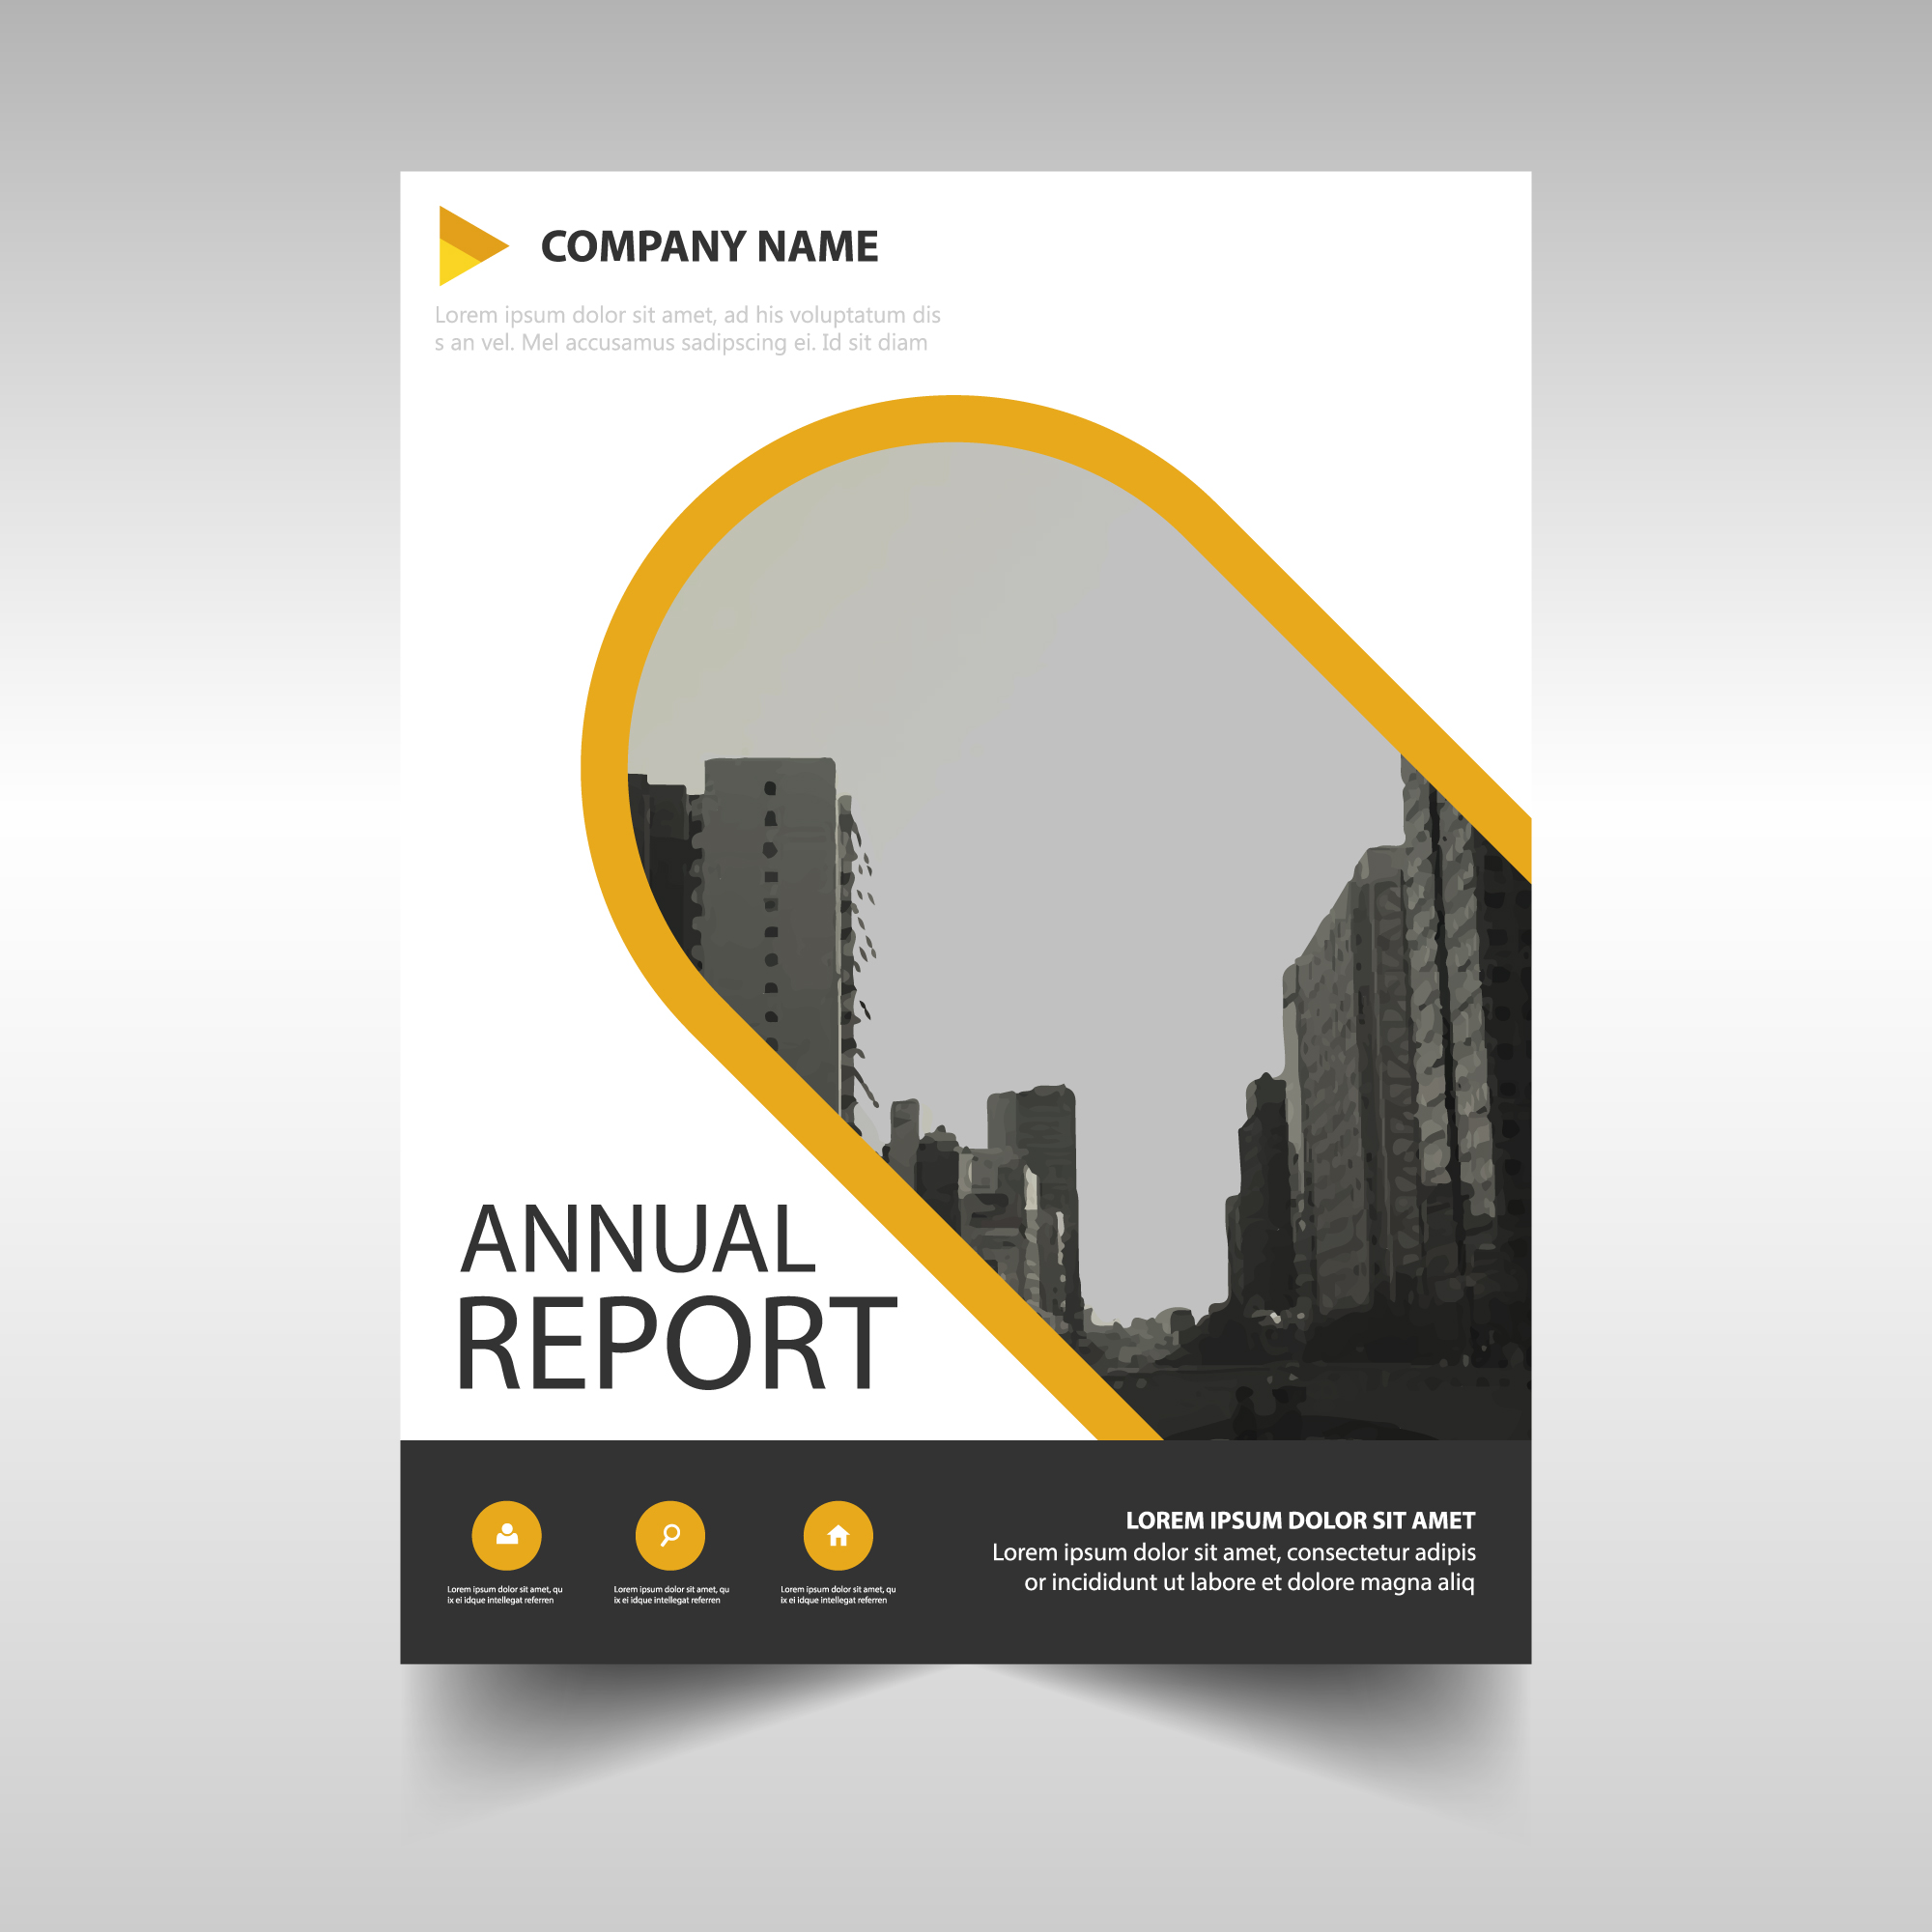 Business brochure with round shapes